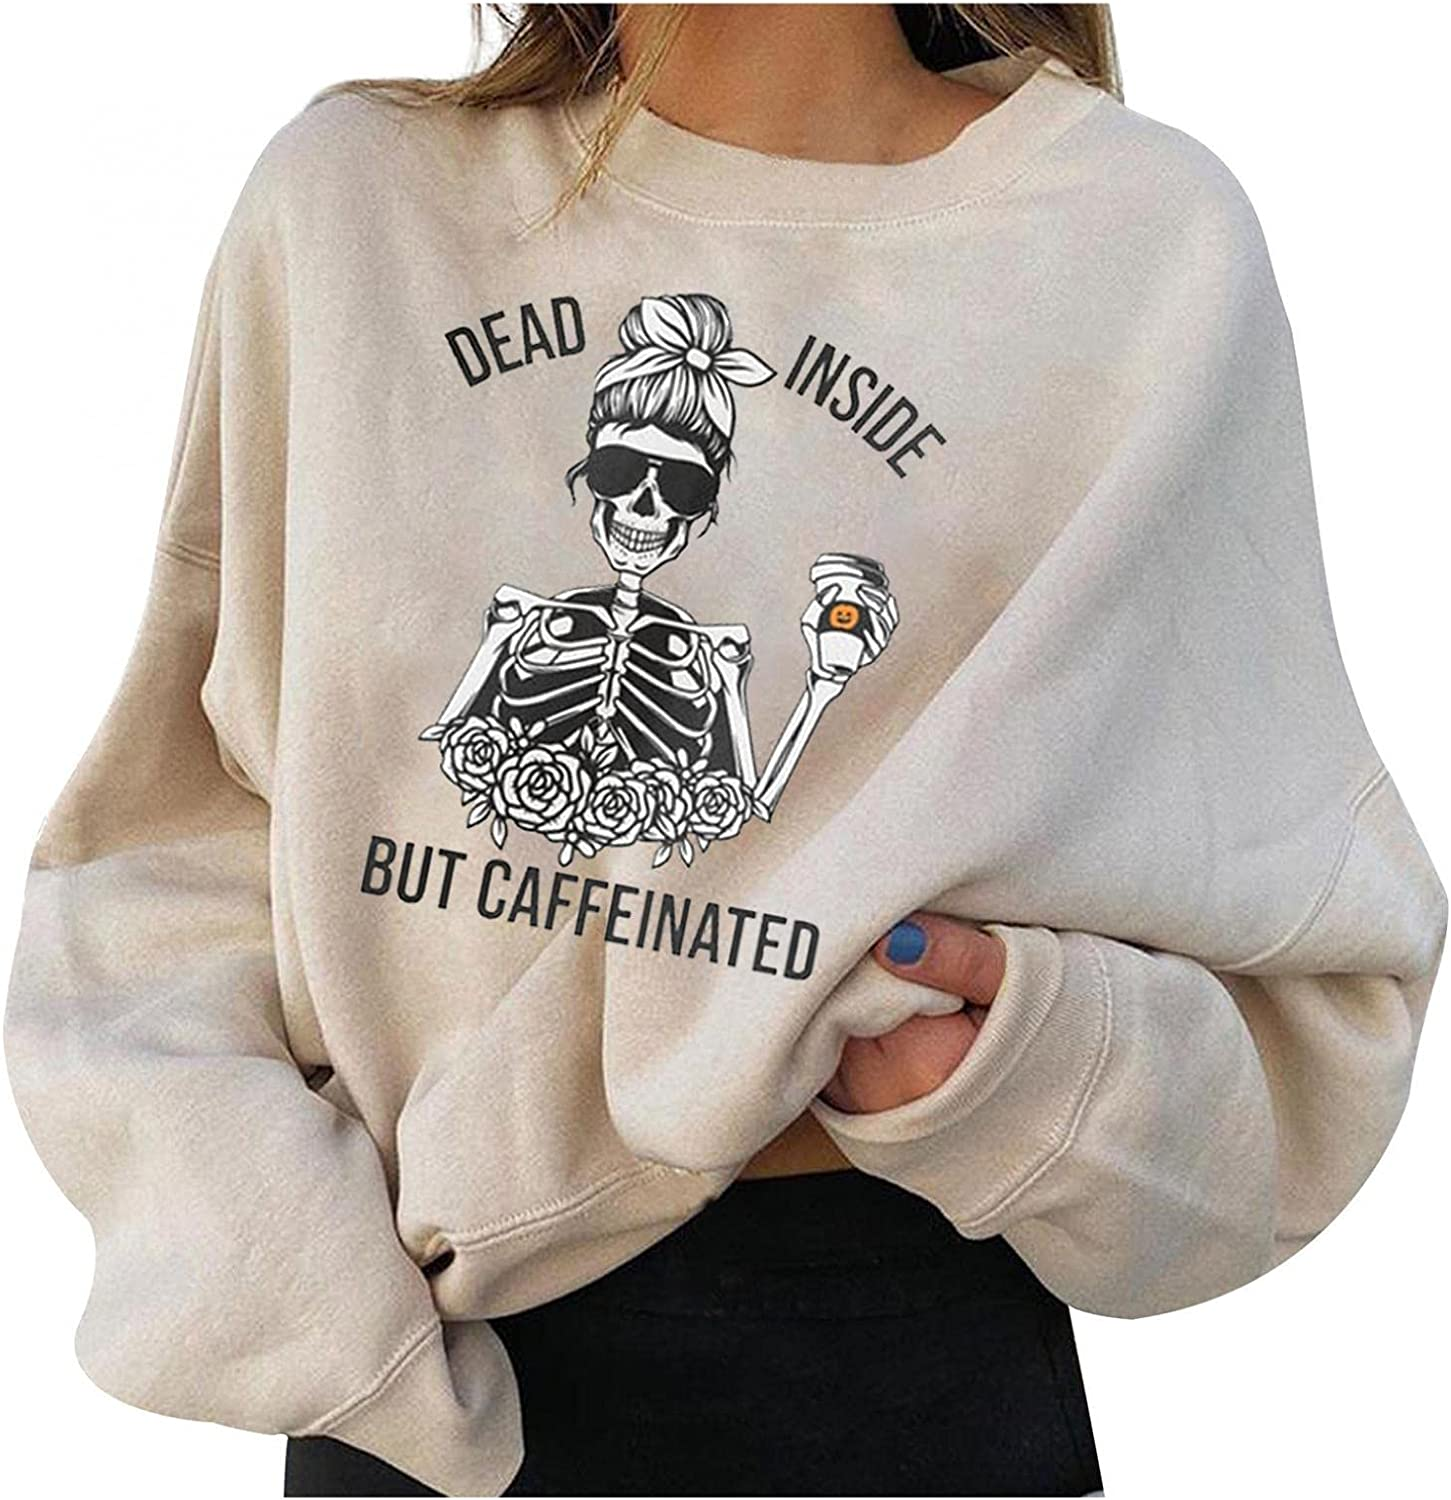 Gibobby Sweatshirt for Women Hoodies Casual Halloween Hooded Loose Cute Print Sweater Pullover O Neck Blouse Long Sleeve